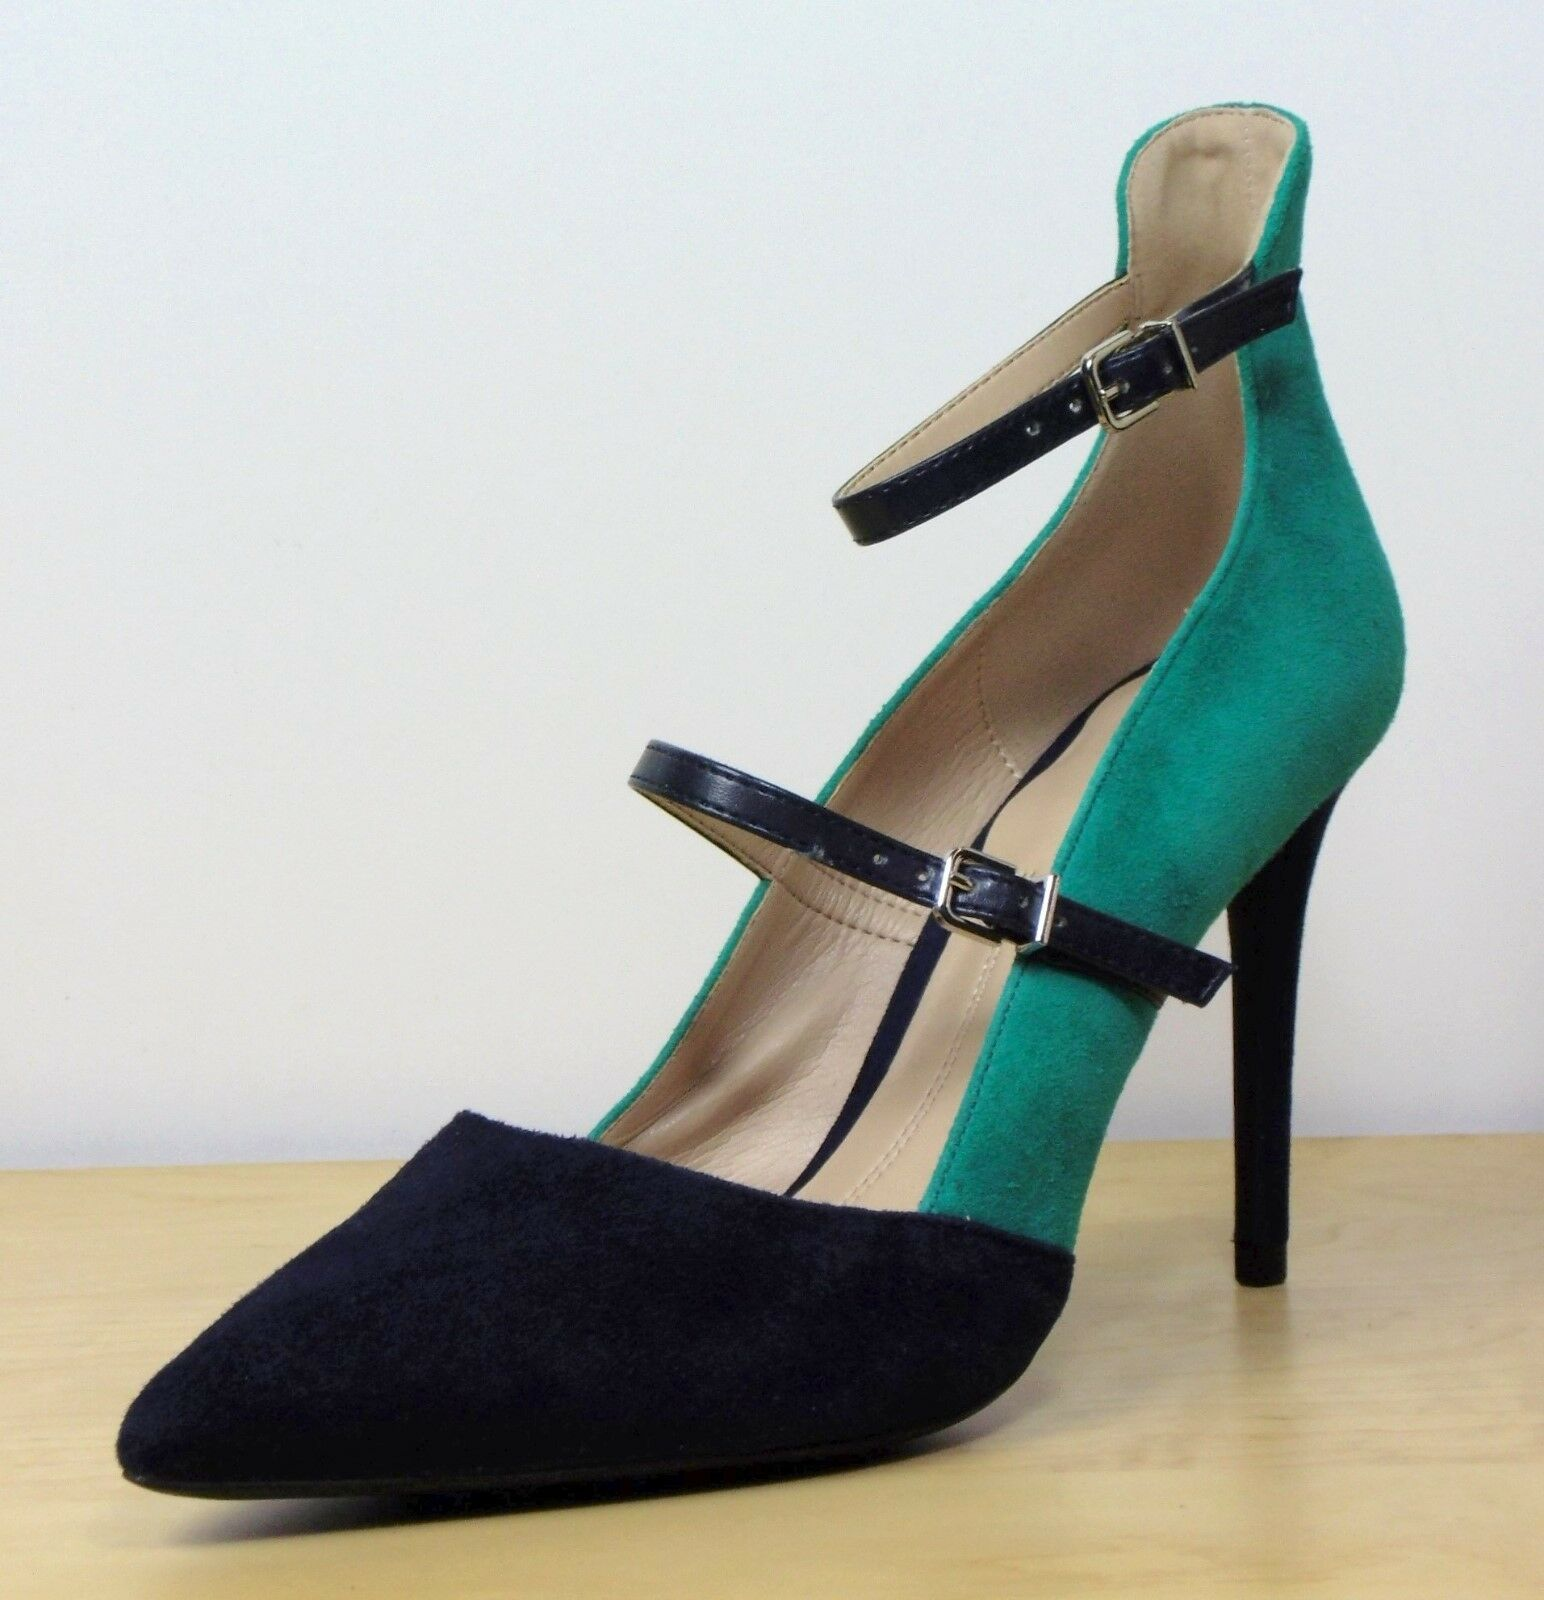 M&S Real SUEDE High STILETTO Ankle Strap COURT SHOES  Size 7  NAVY & GREEN